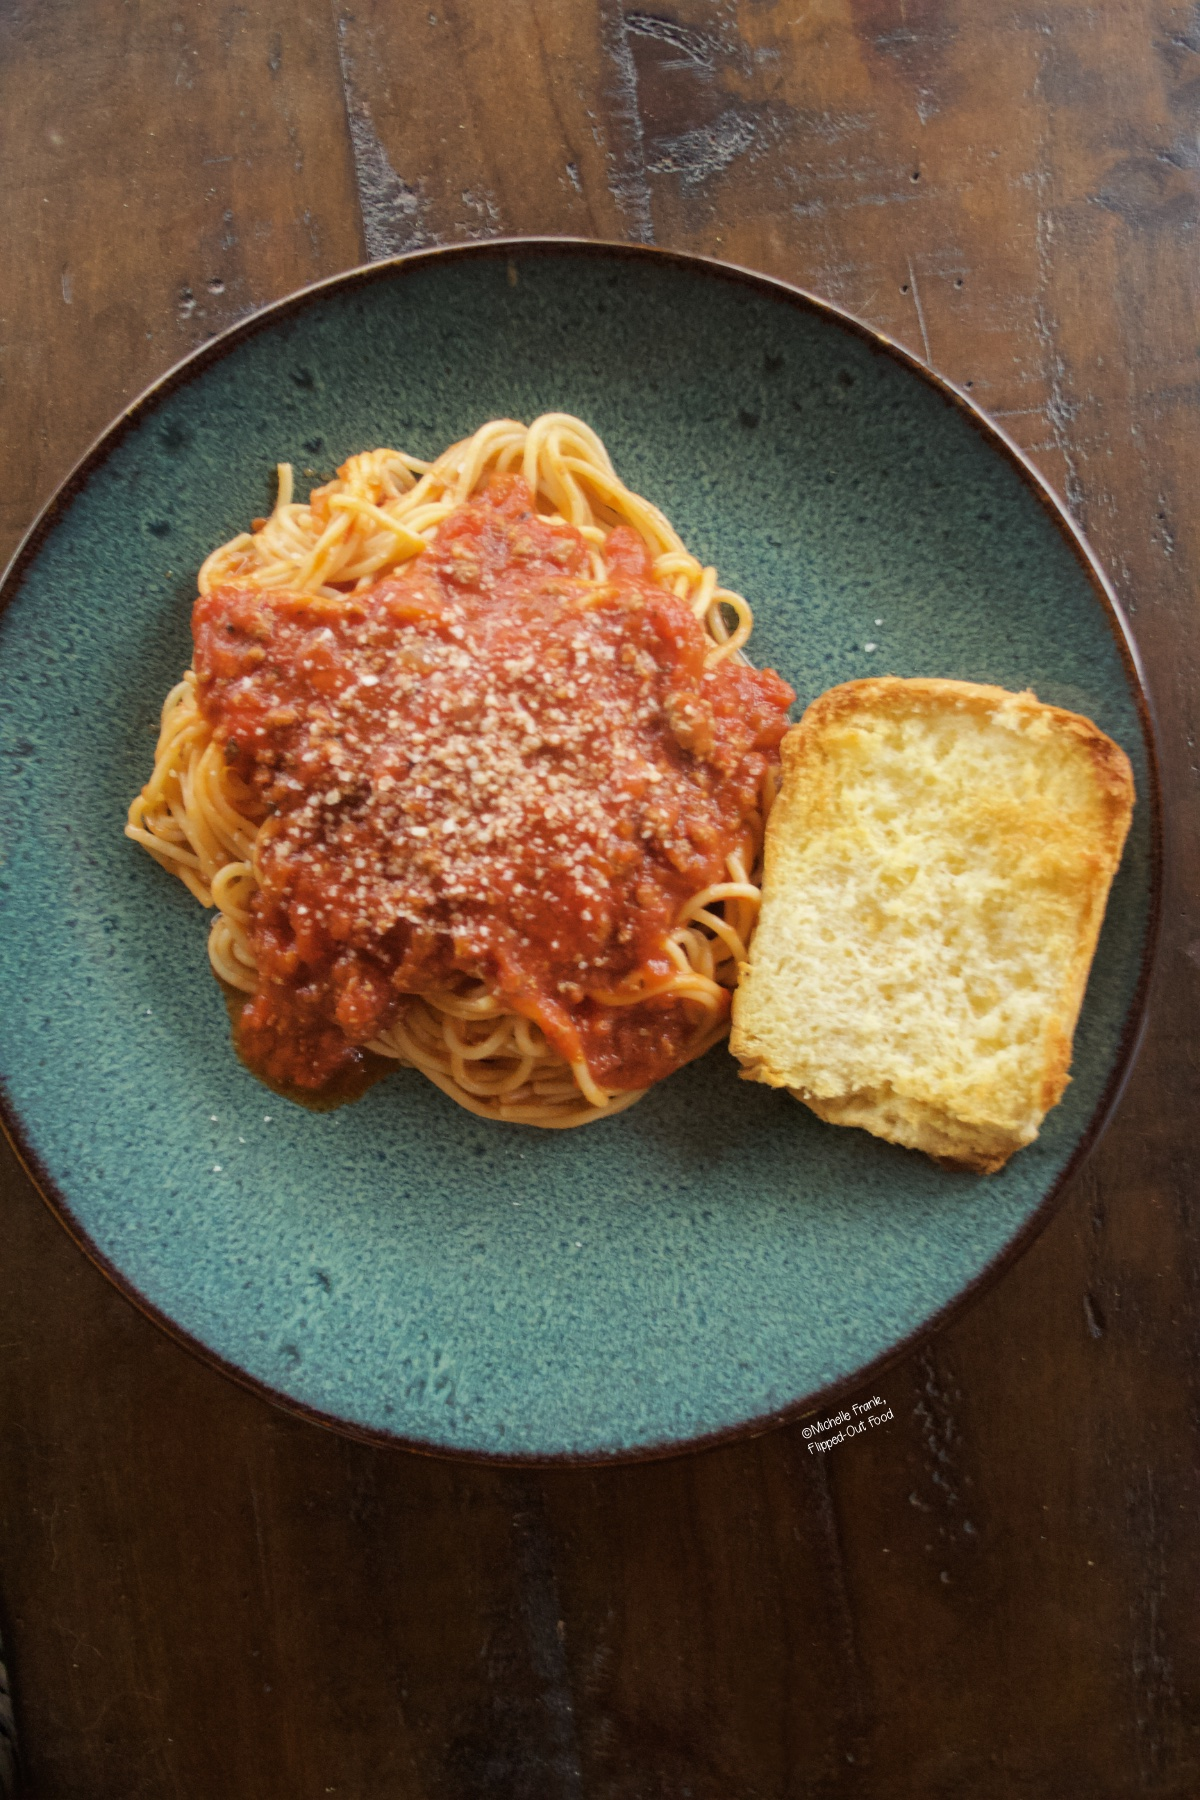 Easy Cheat Bolognese Sauce on spaghetti, served on a blue stoneware plate with a piece of garlic bread. Crumbled Romano cheese is sprinkled over the top.